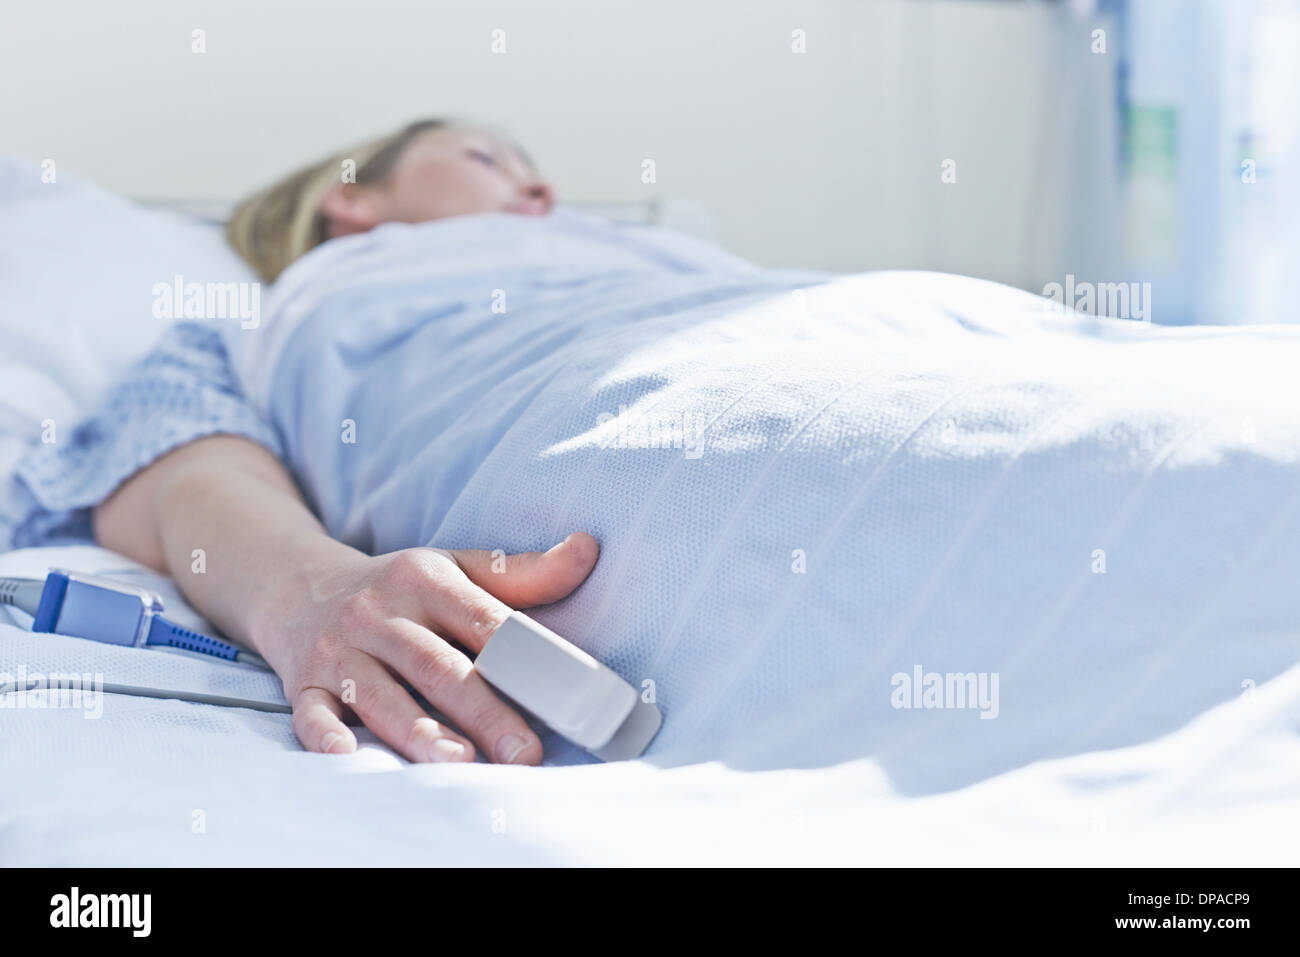 Patient lying on hospital bed with monitor on finger - Stock Image